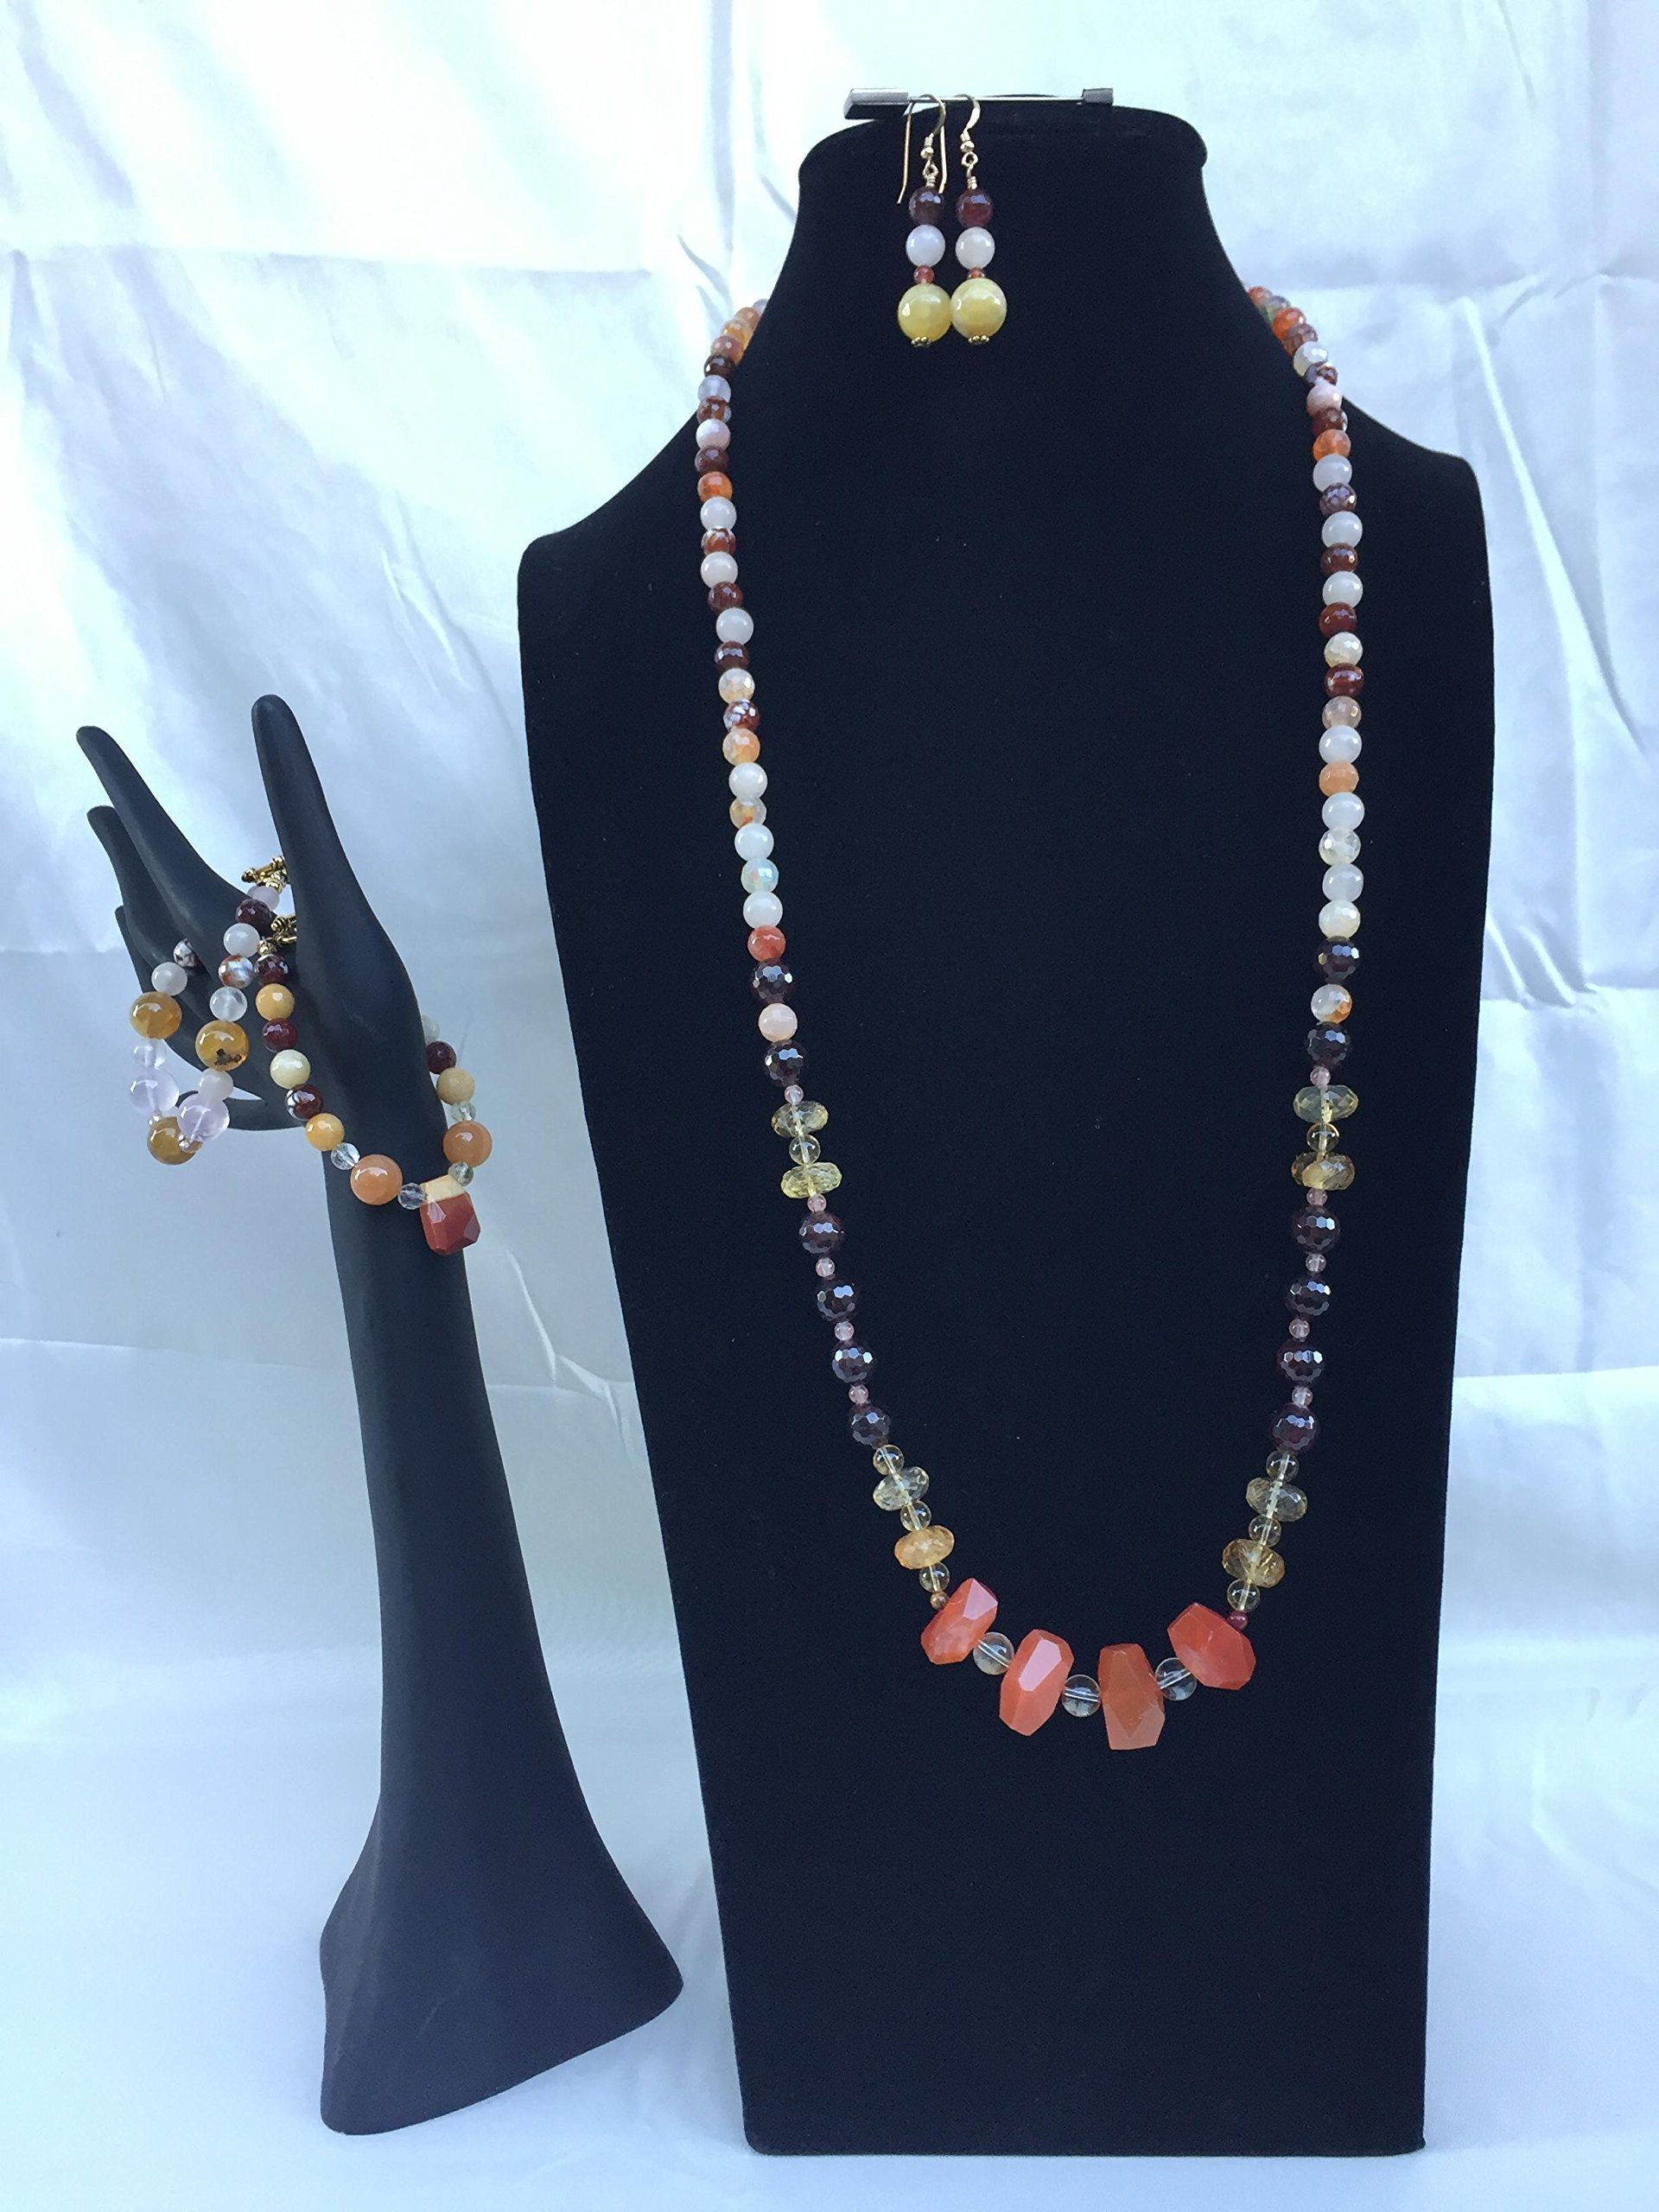 Stunning handmade jewelry set with a necklace, two bracelets and matching dangle earrings. Opal, Citrine, Garnet, and mixed gemstones. One of a kind